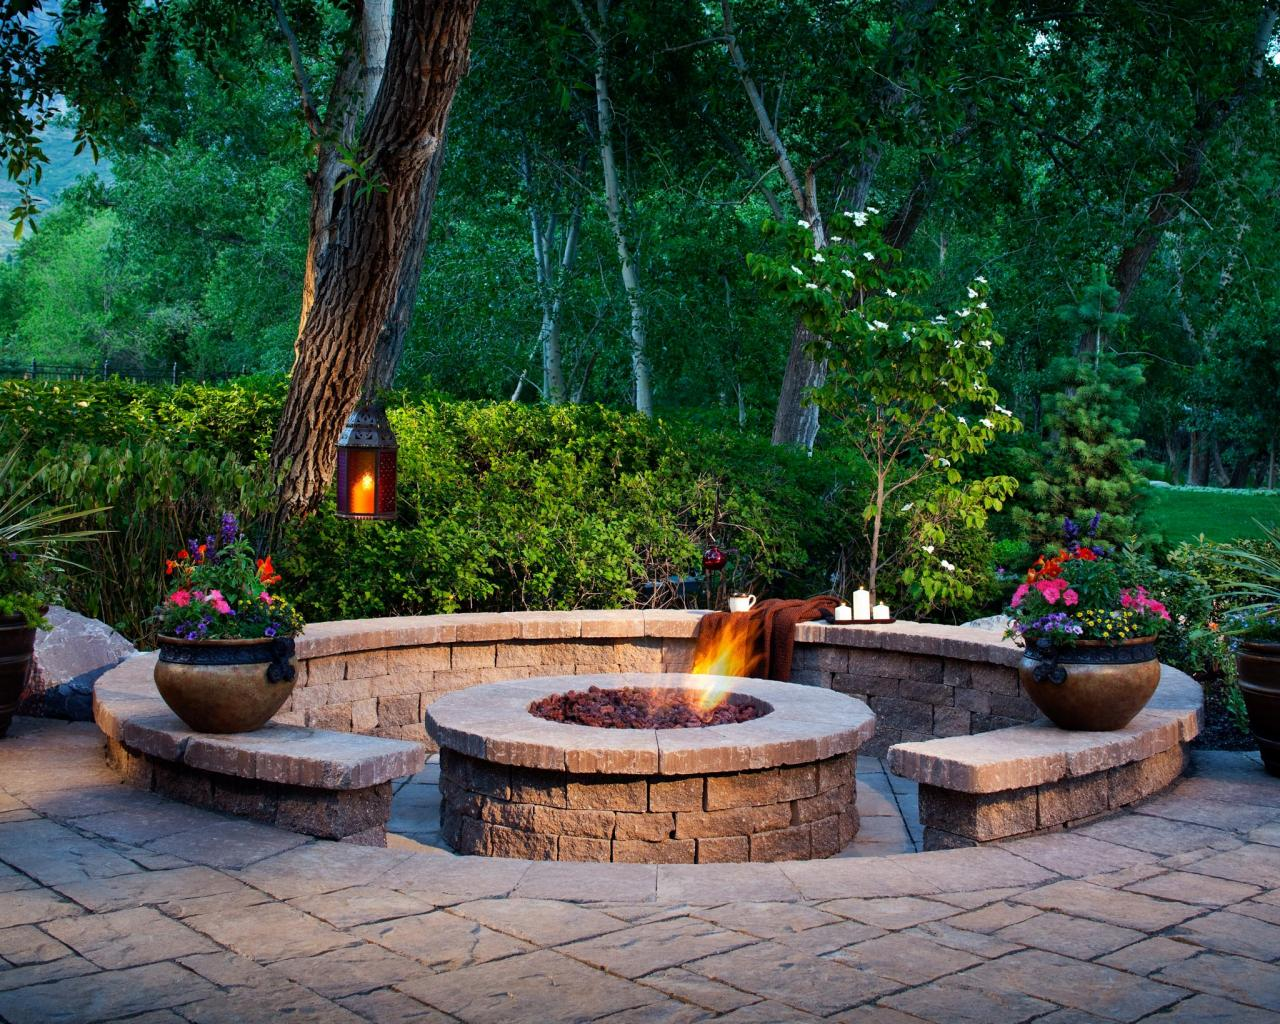 Designing a Patio Around a Fire Pit | DIY